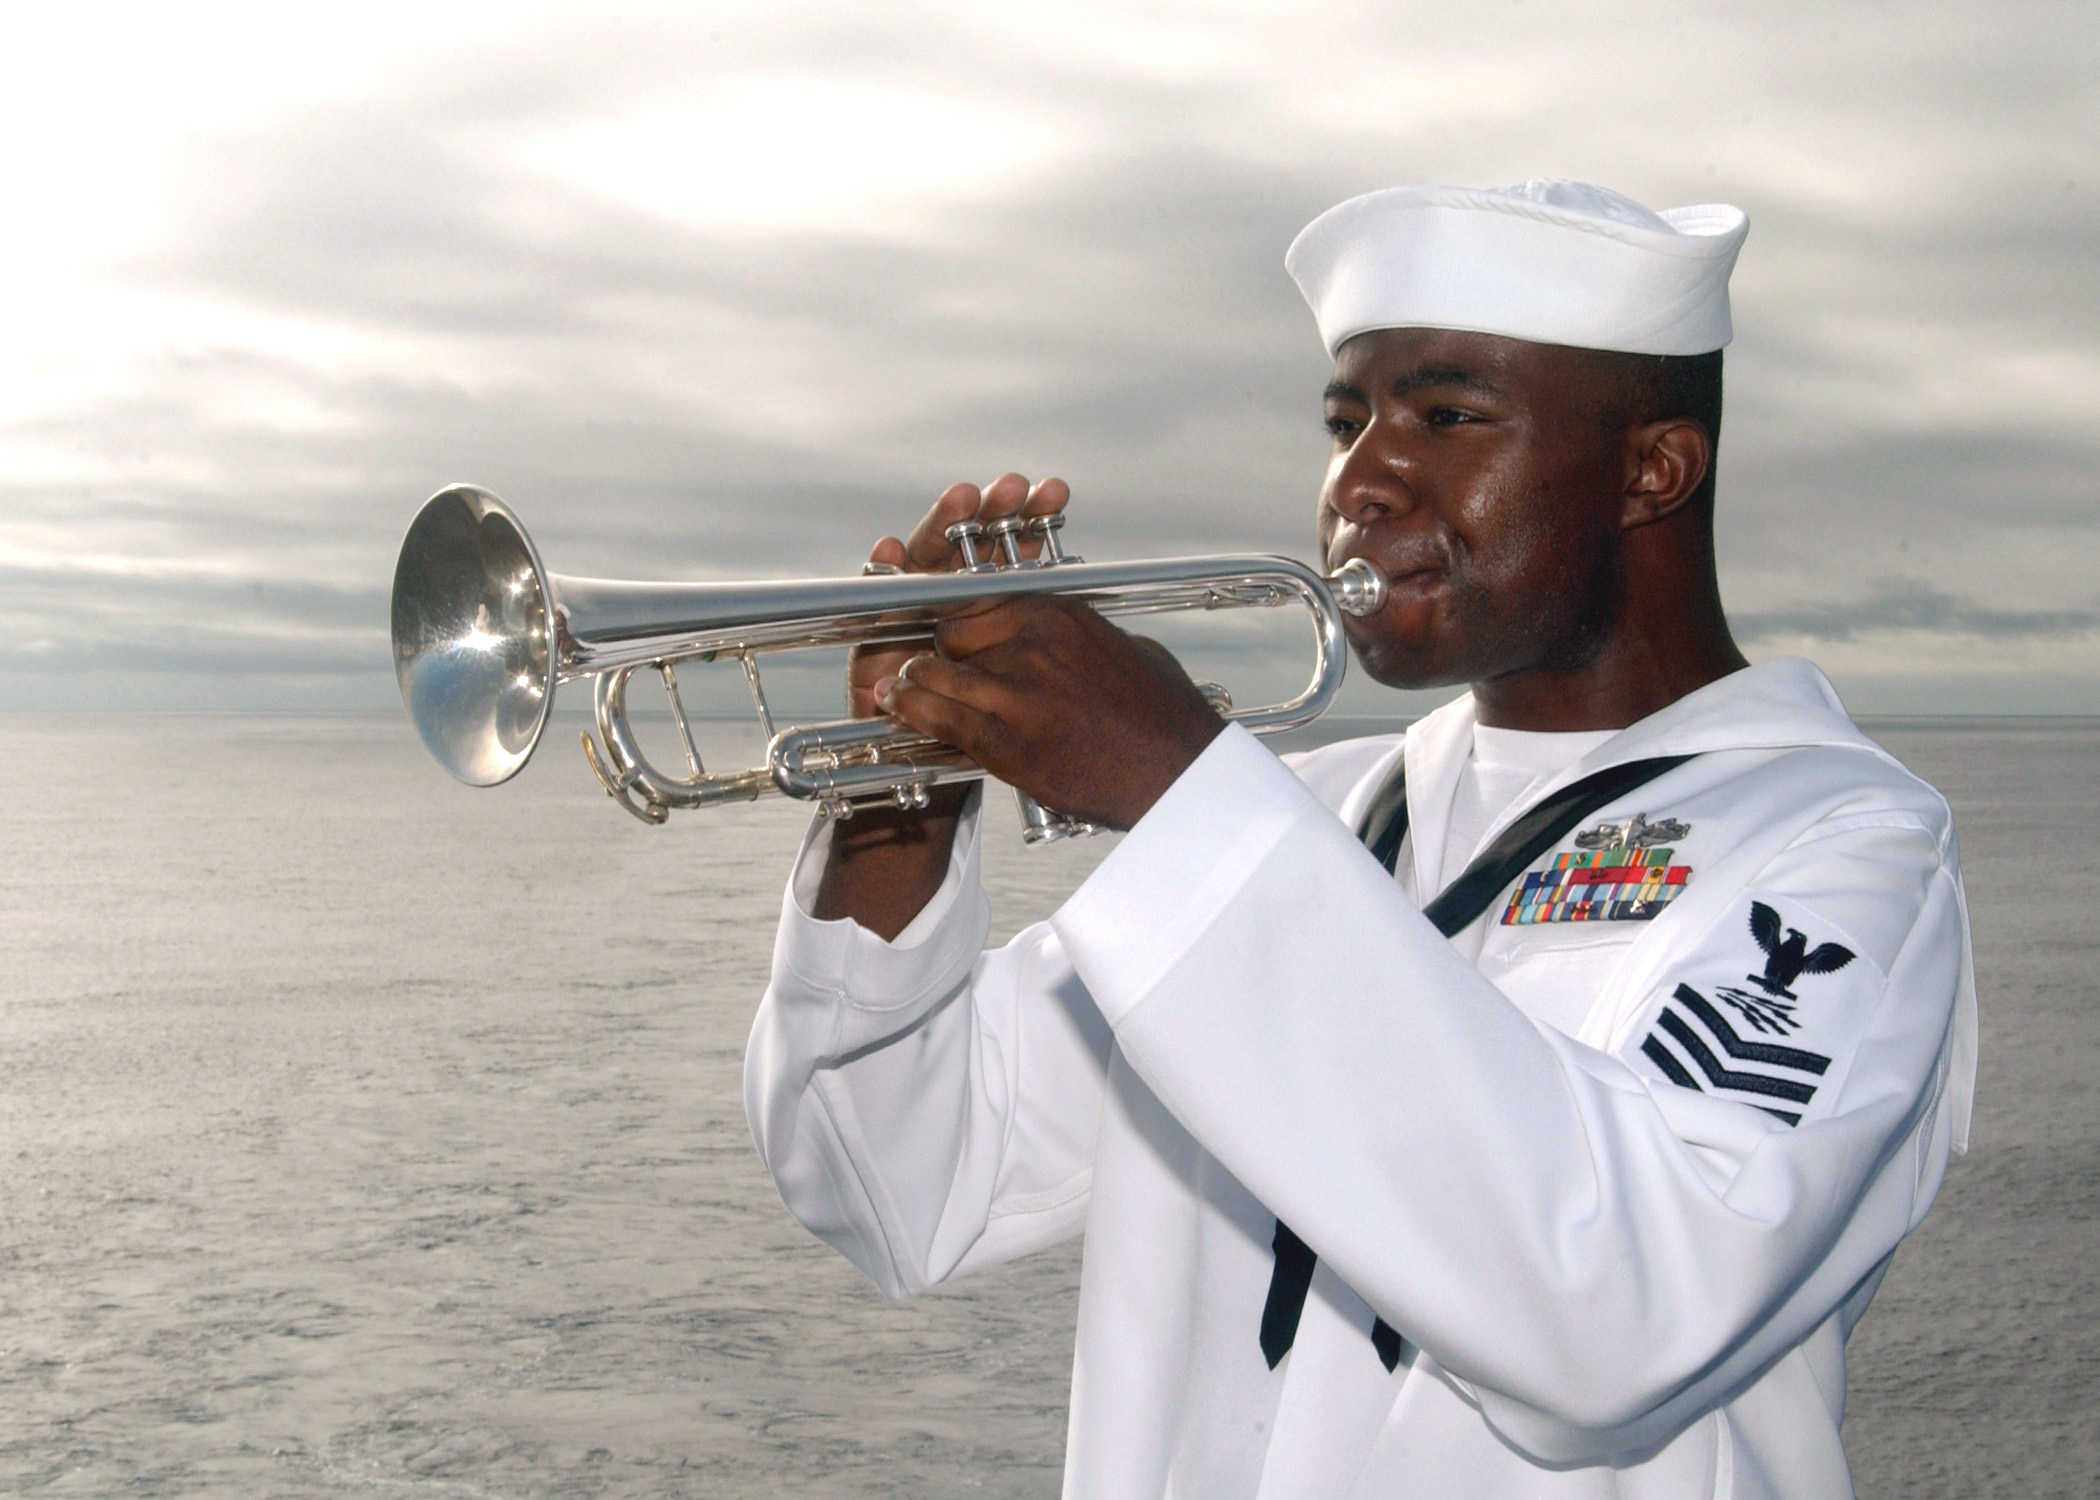 US Navy 040718-N-7781D-038 A bugler plays TAPS during a wreath laying ceremony held on the flight deck in memorial of Captain Franklin Hooks II.jpg